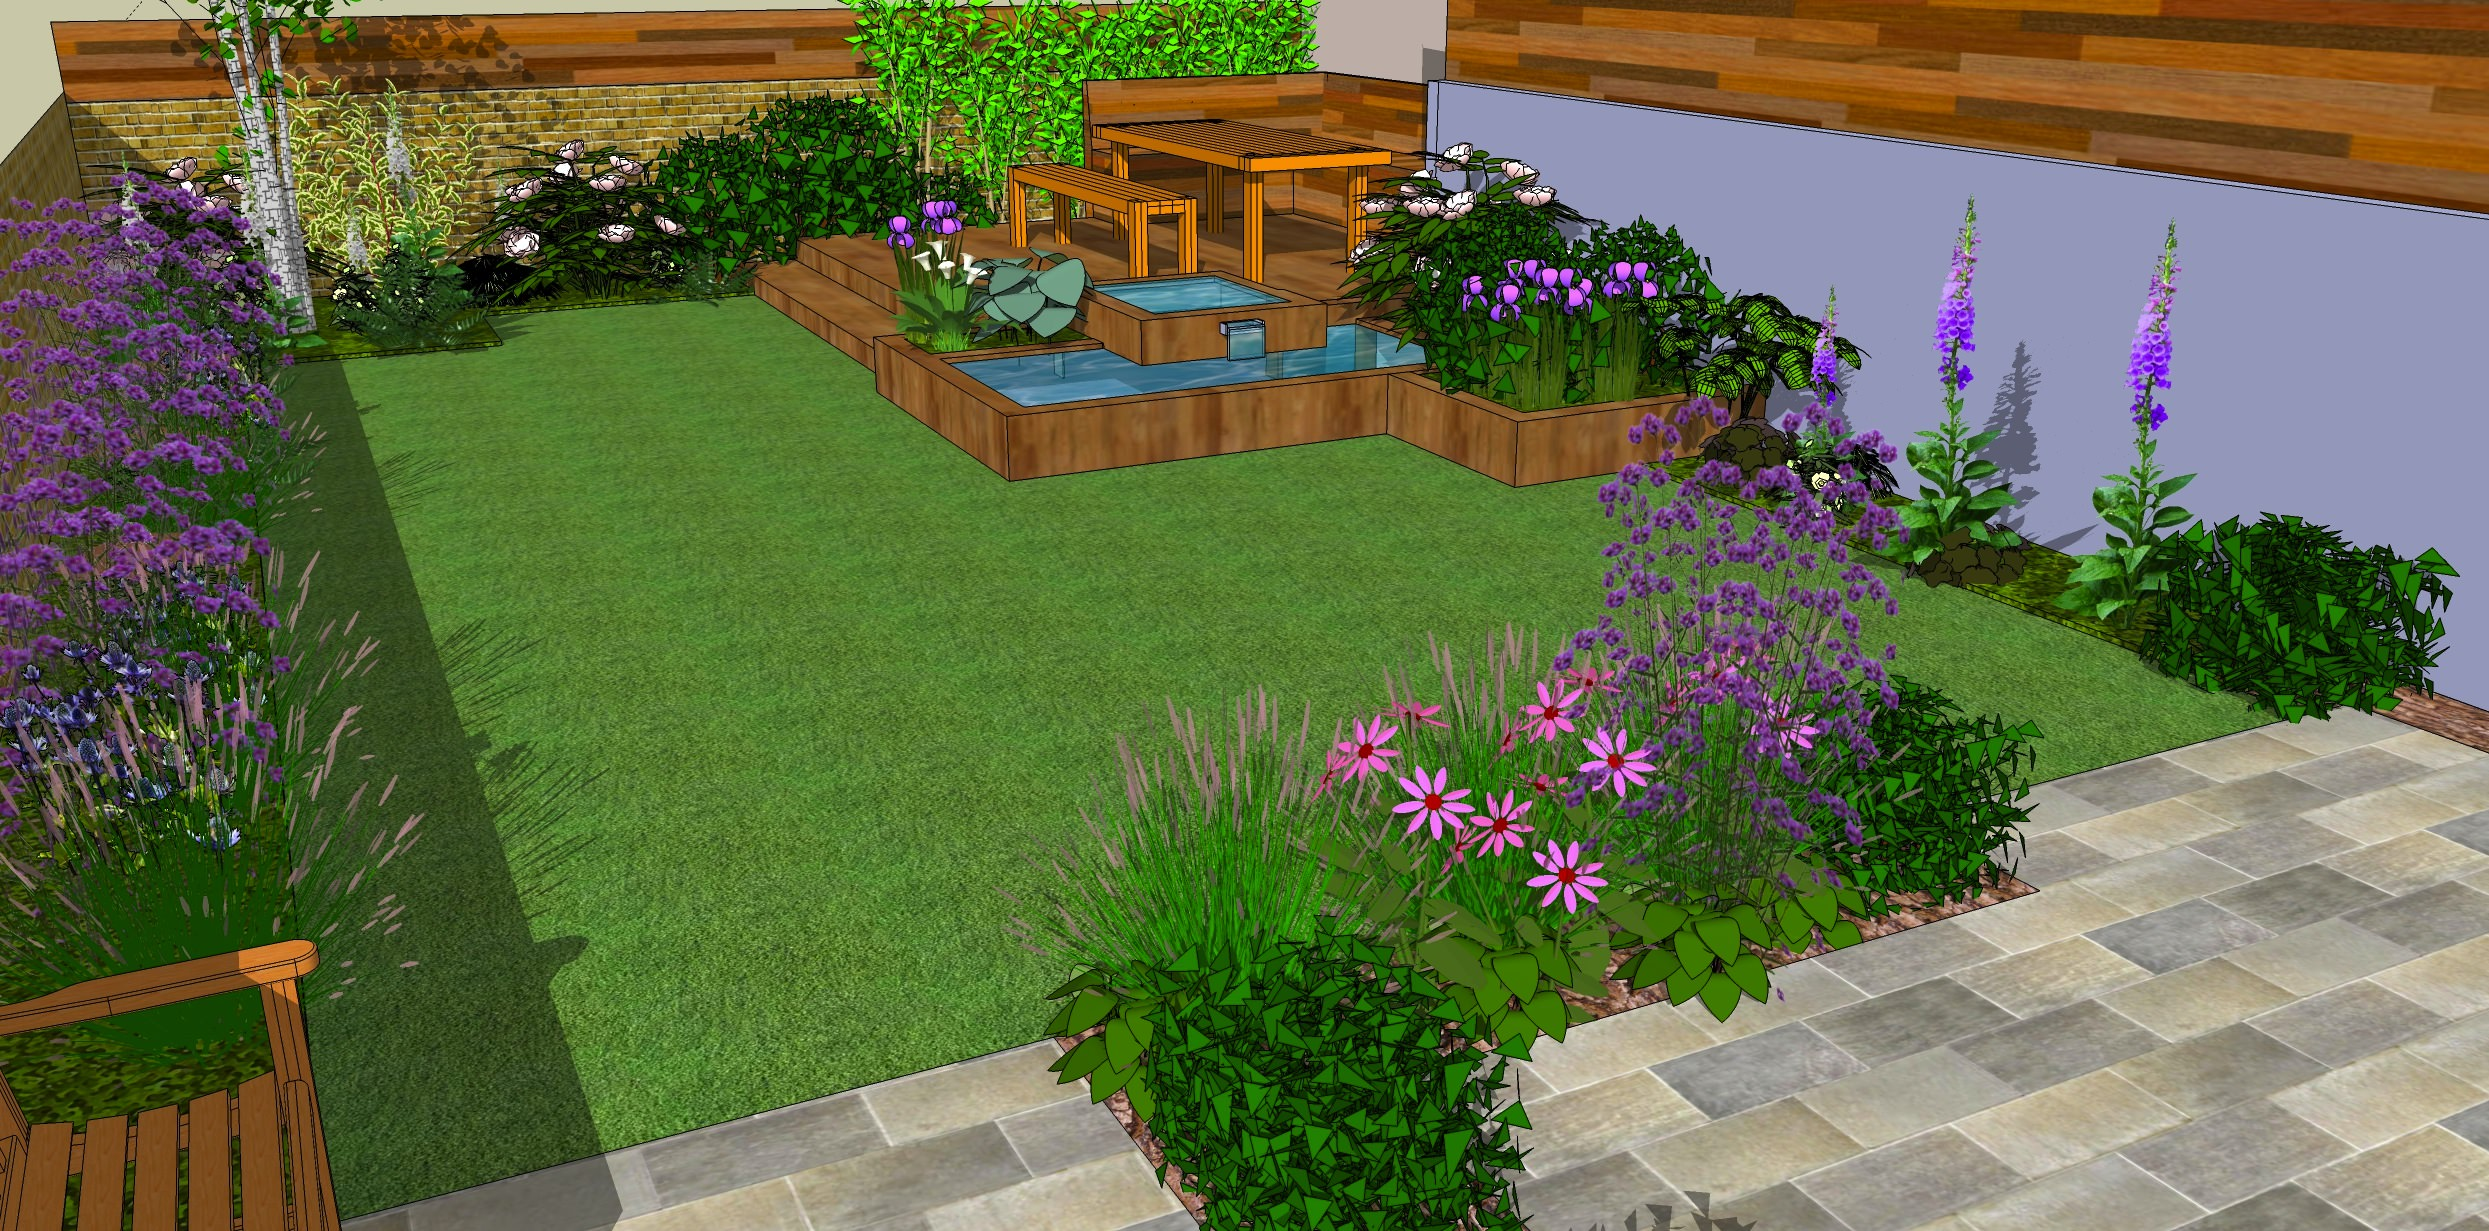 Low maintenance garden designs garden club london for Easy to care for garden designs